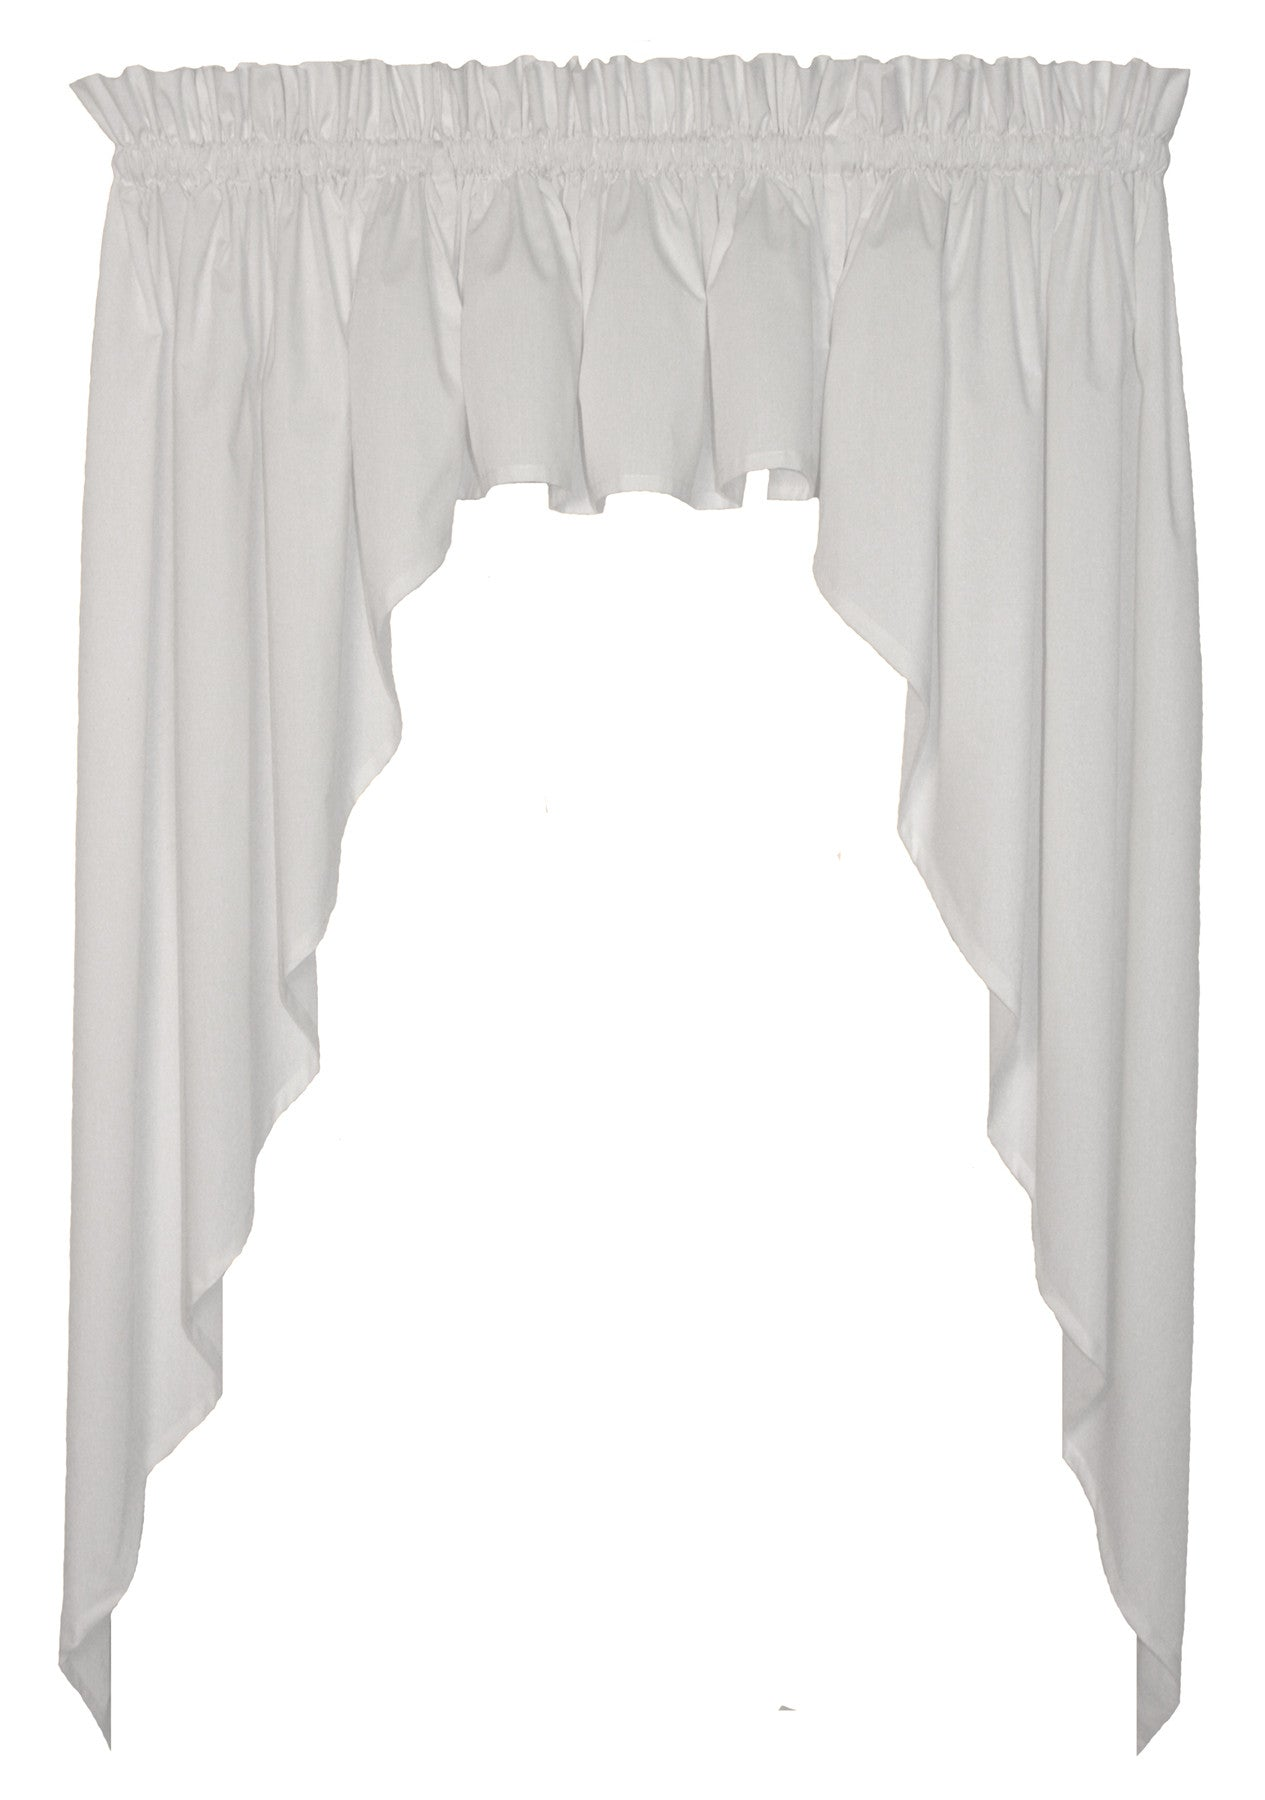 Martha Solid Color 3 Piece Tailored Swags Filler Valance Window Curtains Set